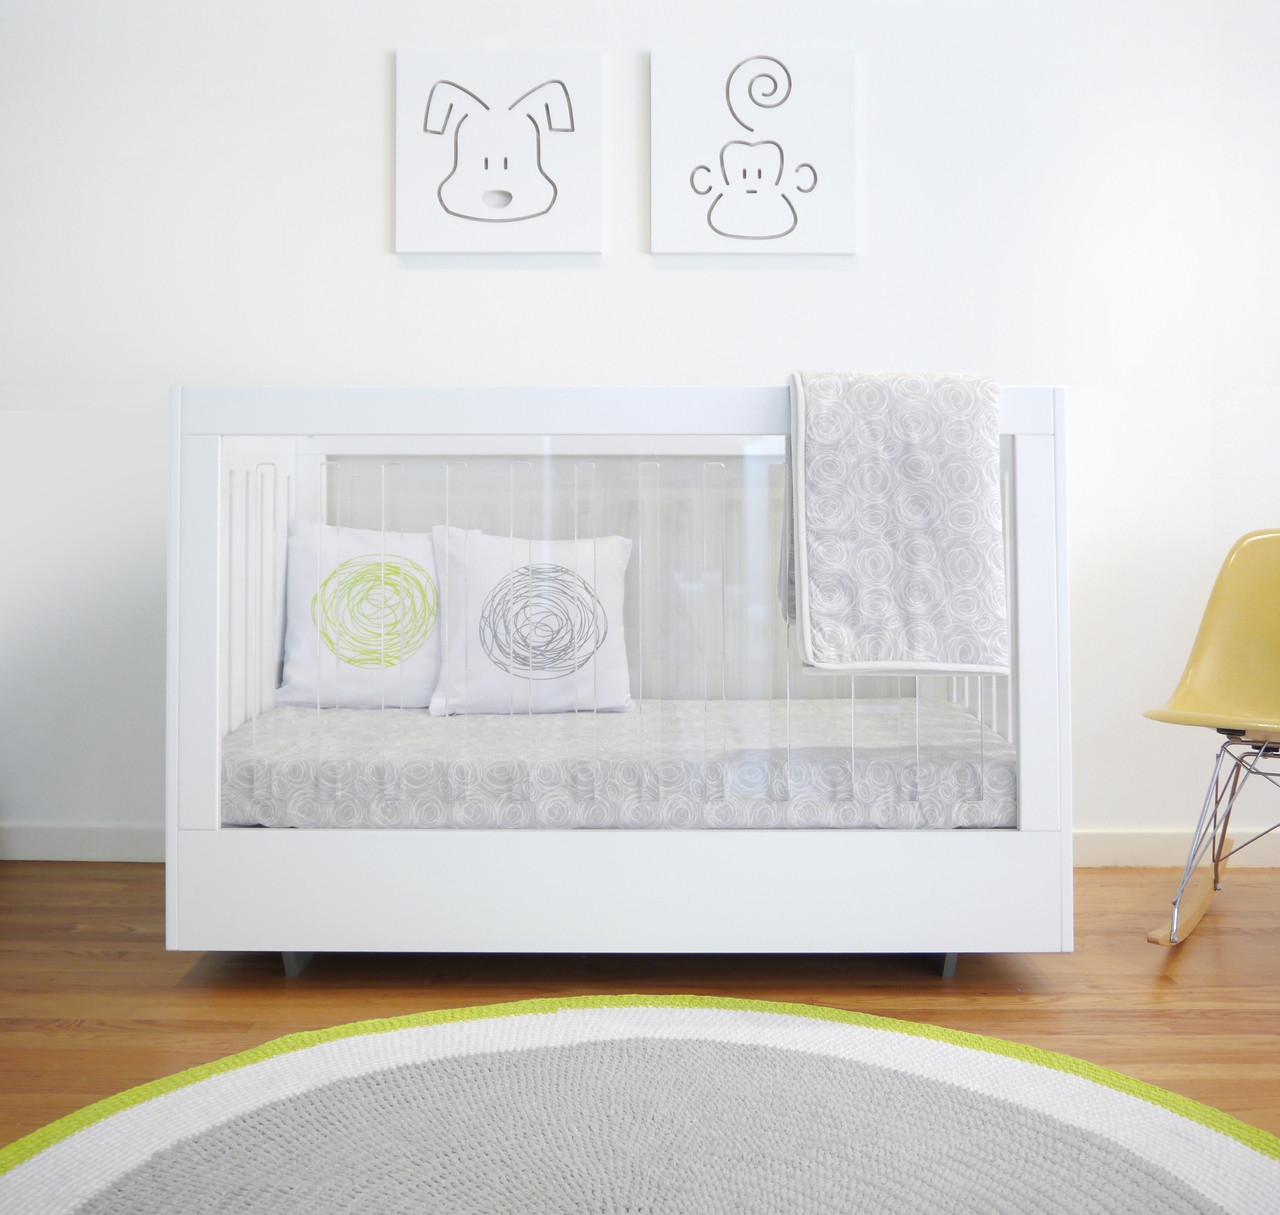 Roh Crib - Two Sided Acrylic and White - Spot On Square - Double click image for full Zoom